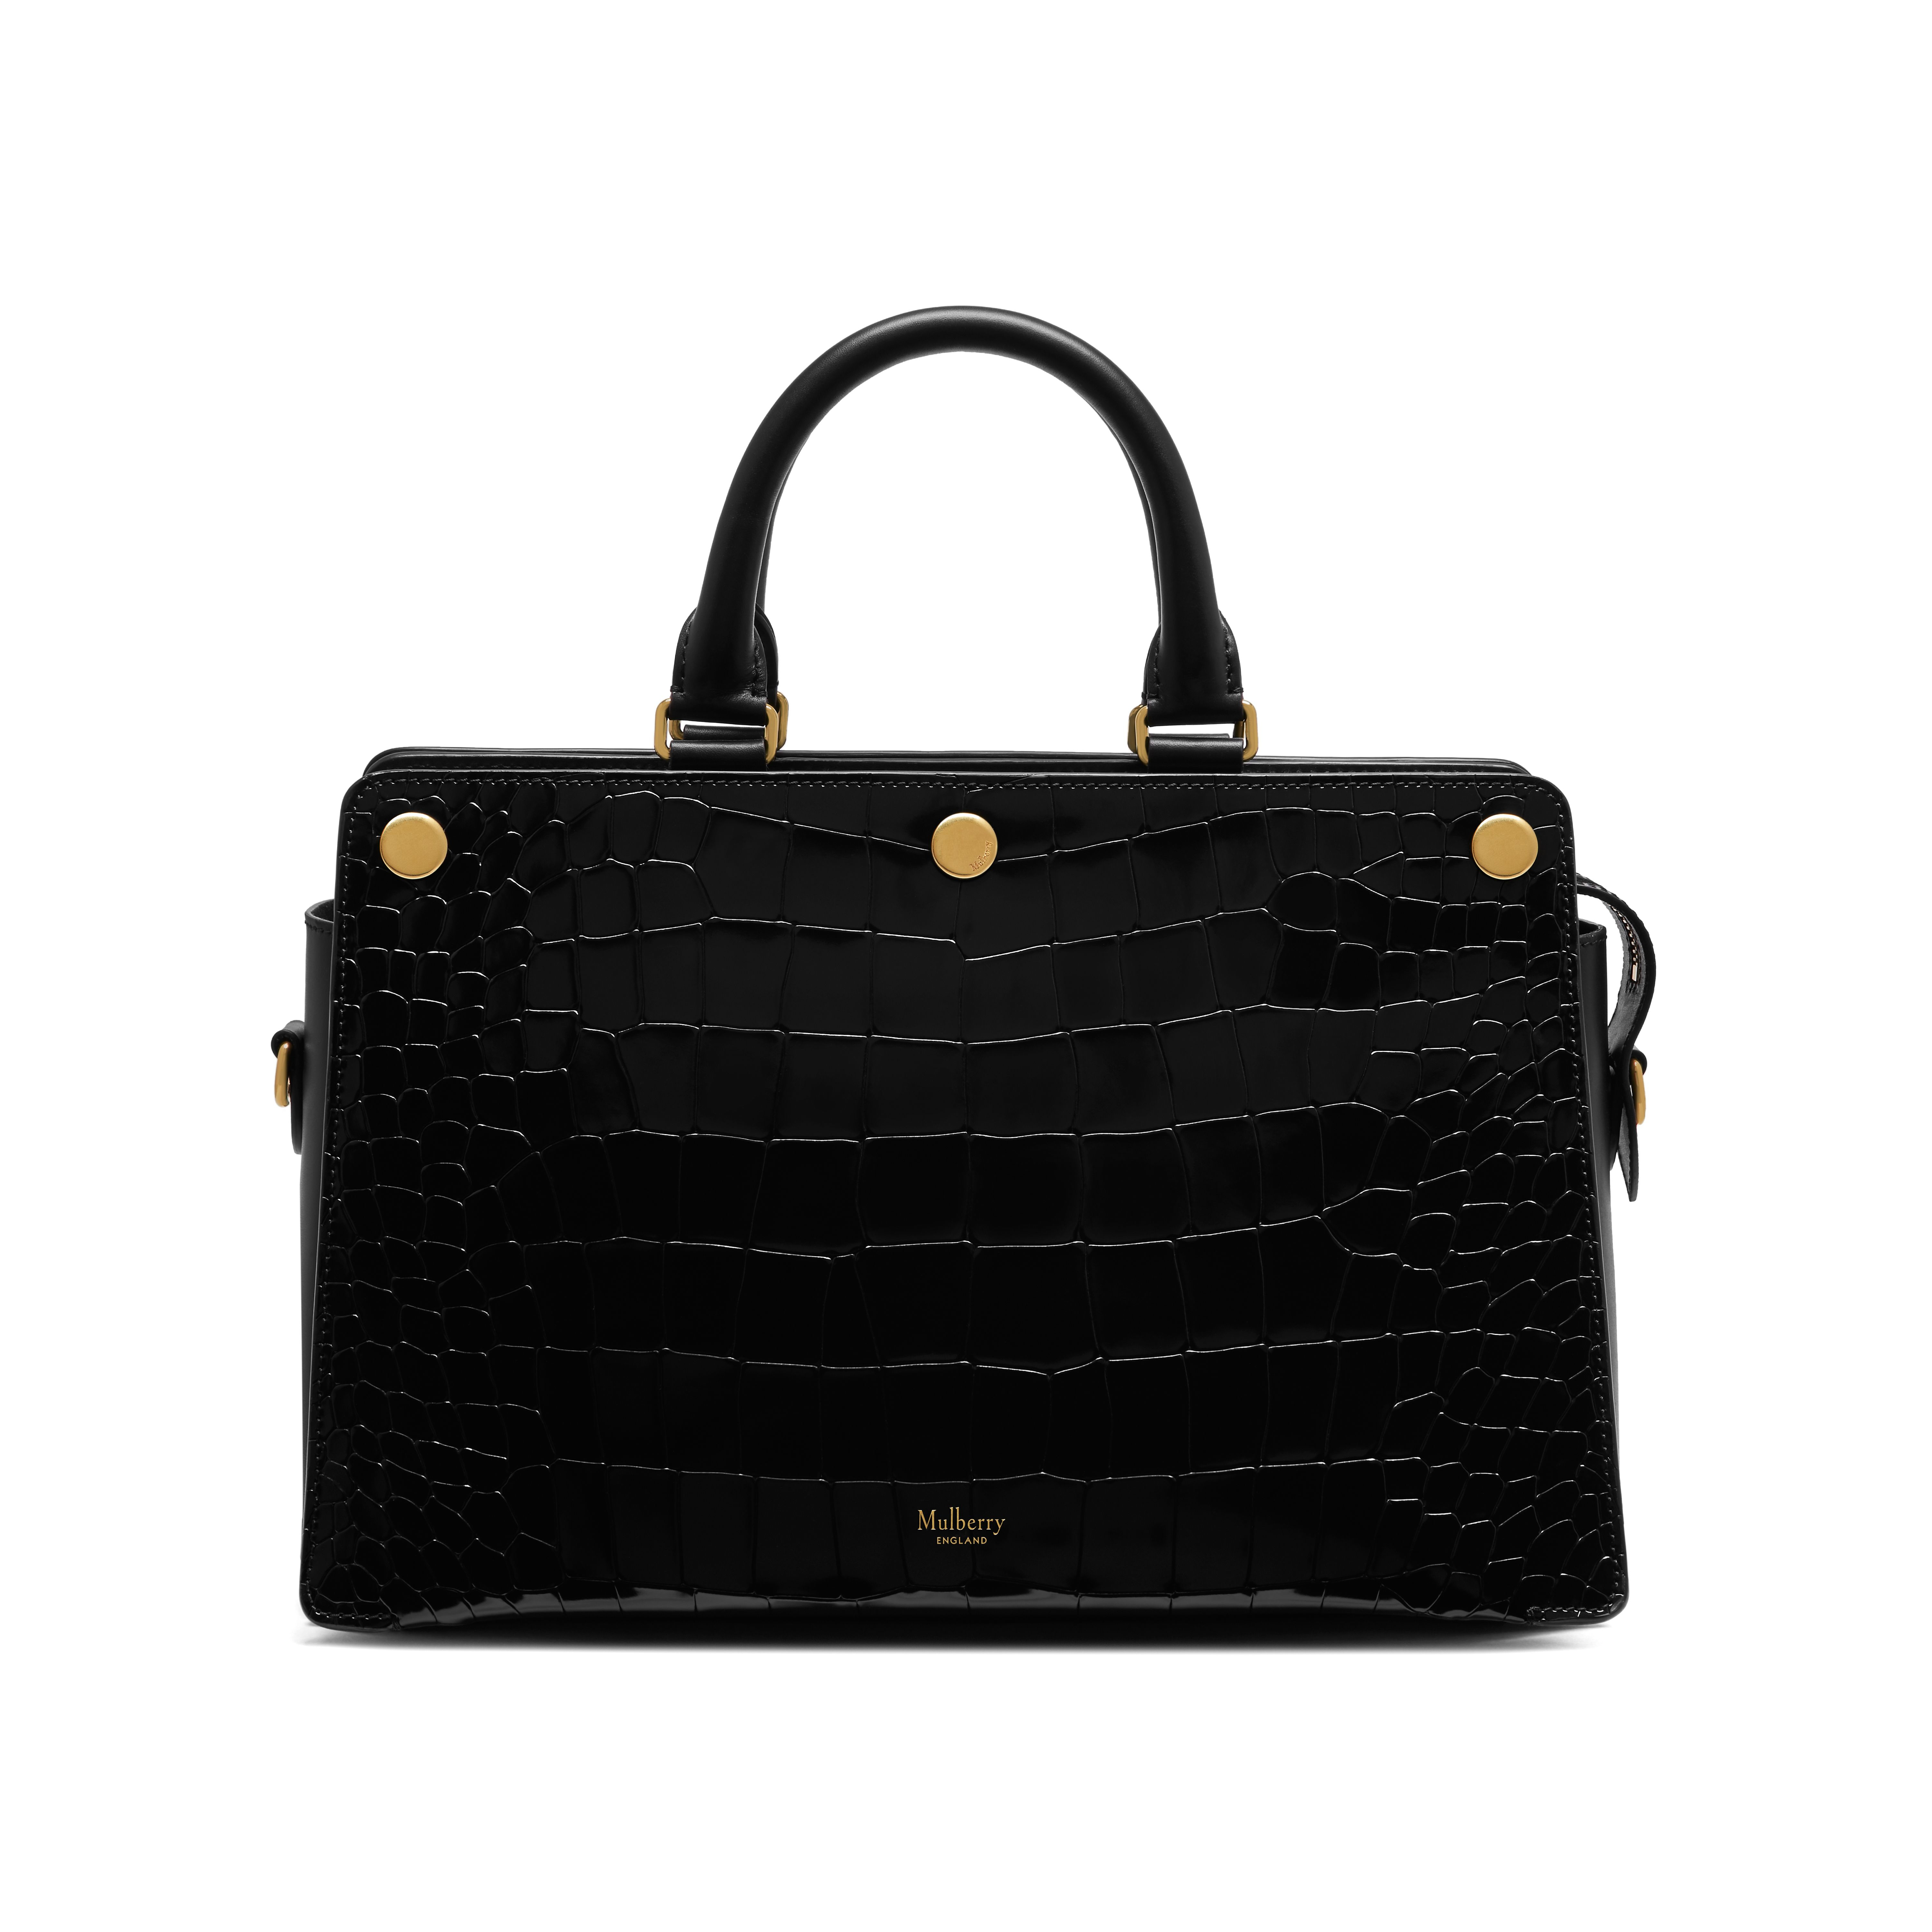 6ee71cfe70 ... bag for women in green lyst a40a2 fd2d9 sweden lyst mulberry chester  croc embossed leather satchel in black 12592 8b15b ...